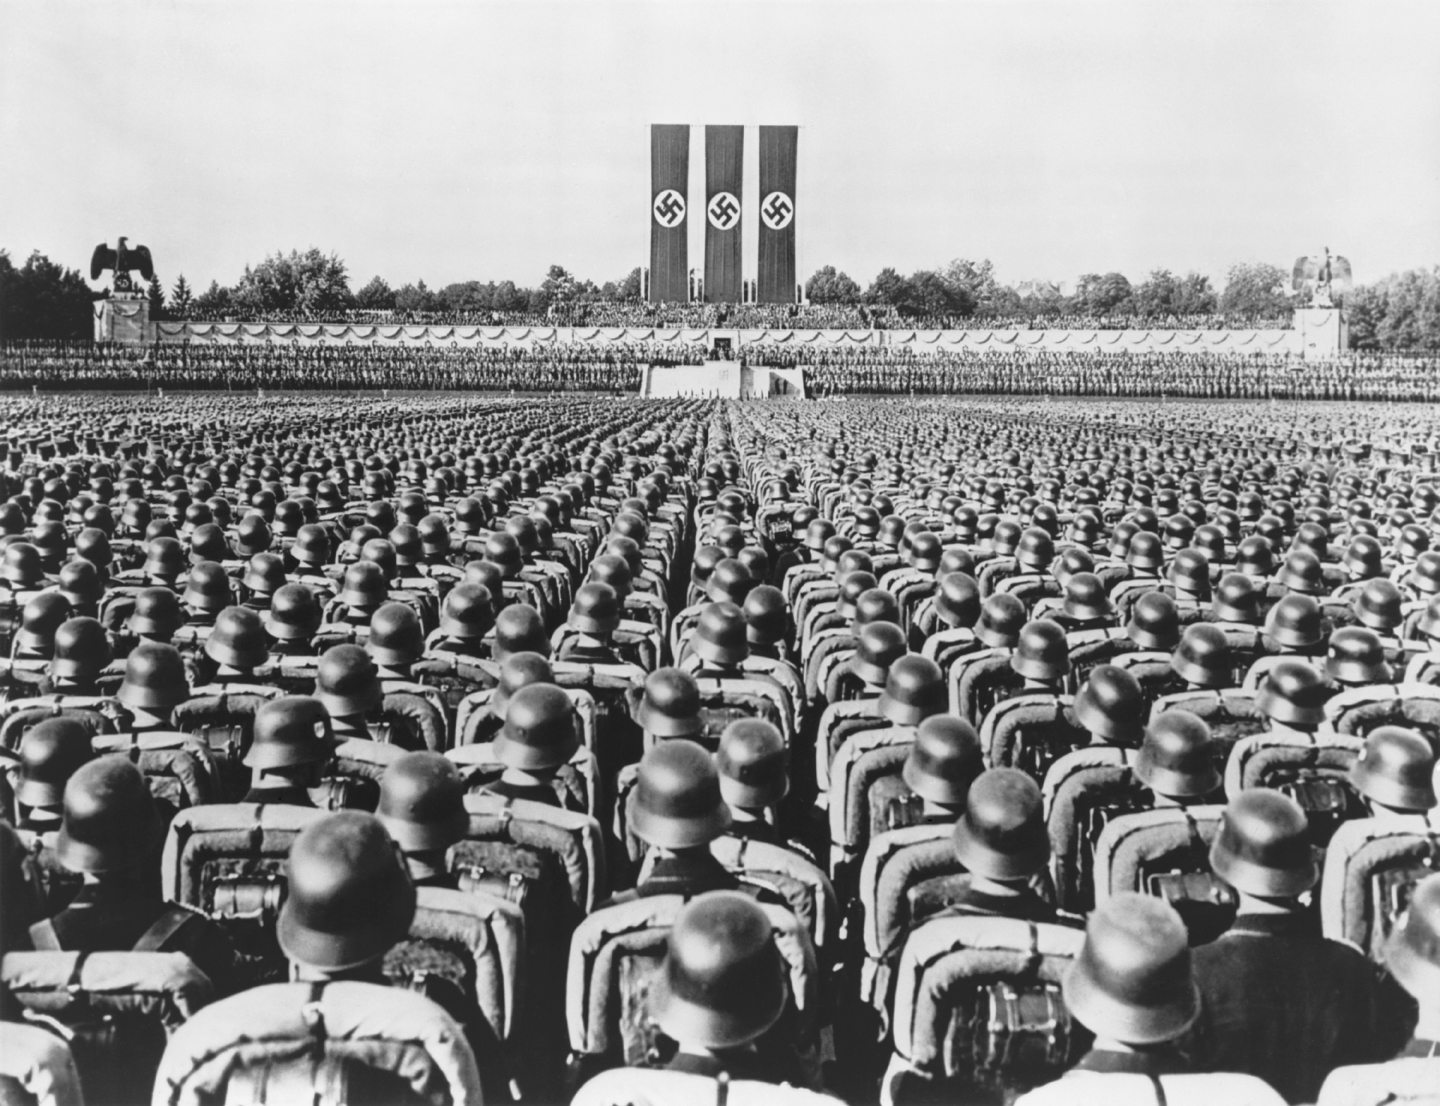 Nazi soldiers at the Nuremburg rally in 1936